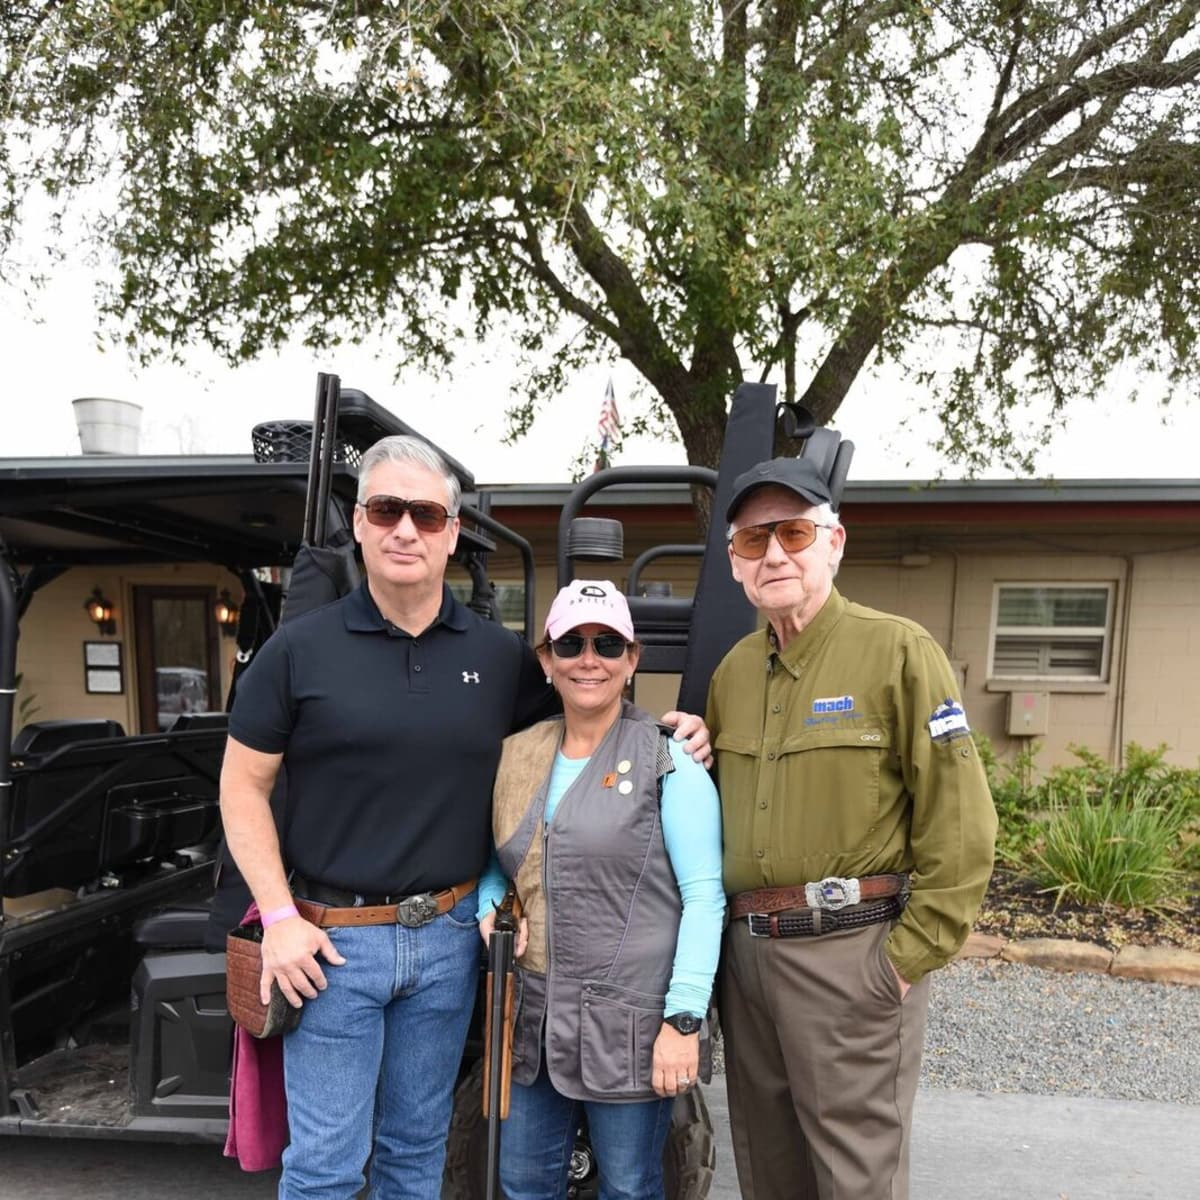 Butch Mach, Carmen Mach, Harry Mach at Memorial Hermann Clay shoot